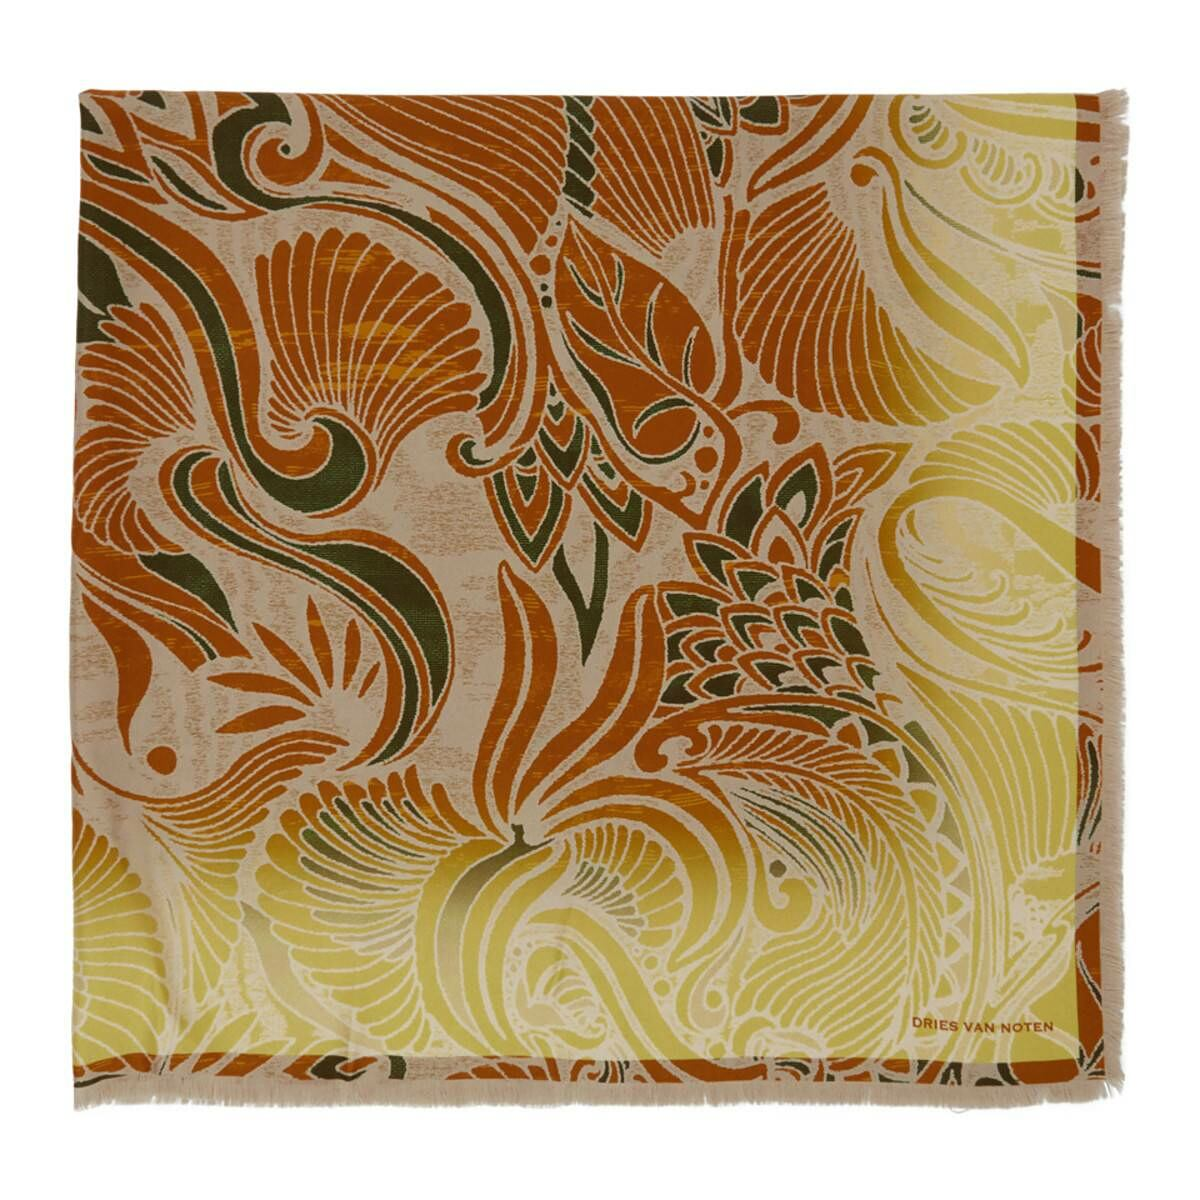 Dries Van Noten Yellow Silk Floral Scarf Ssense USA MEN Men ACCESSORIES Mens SCARFS